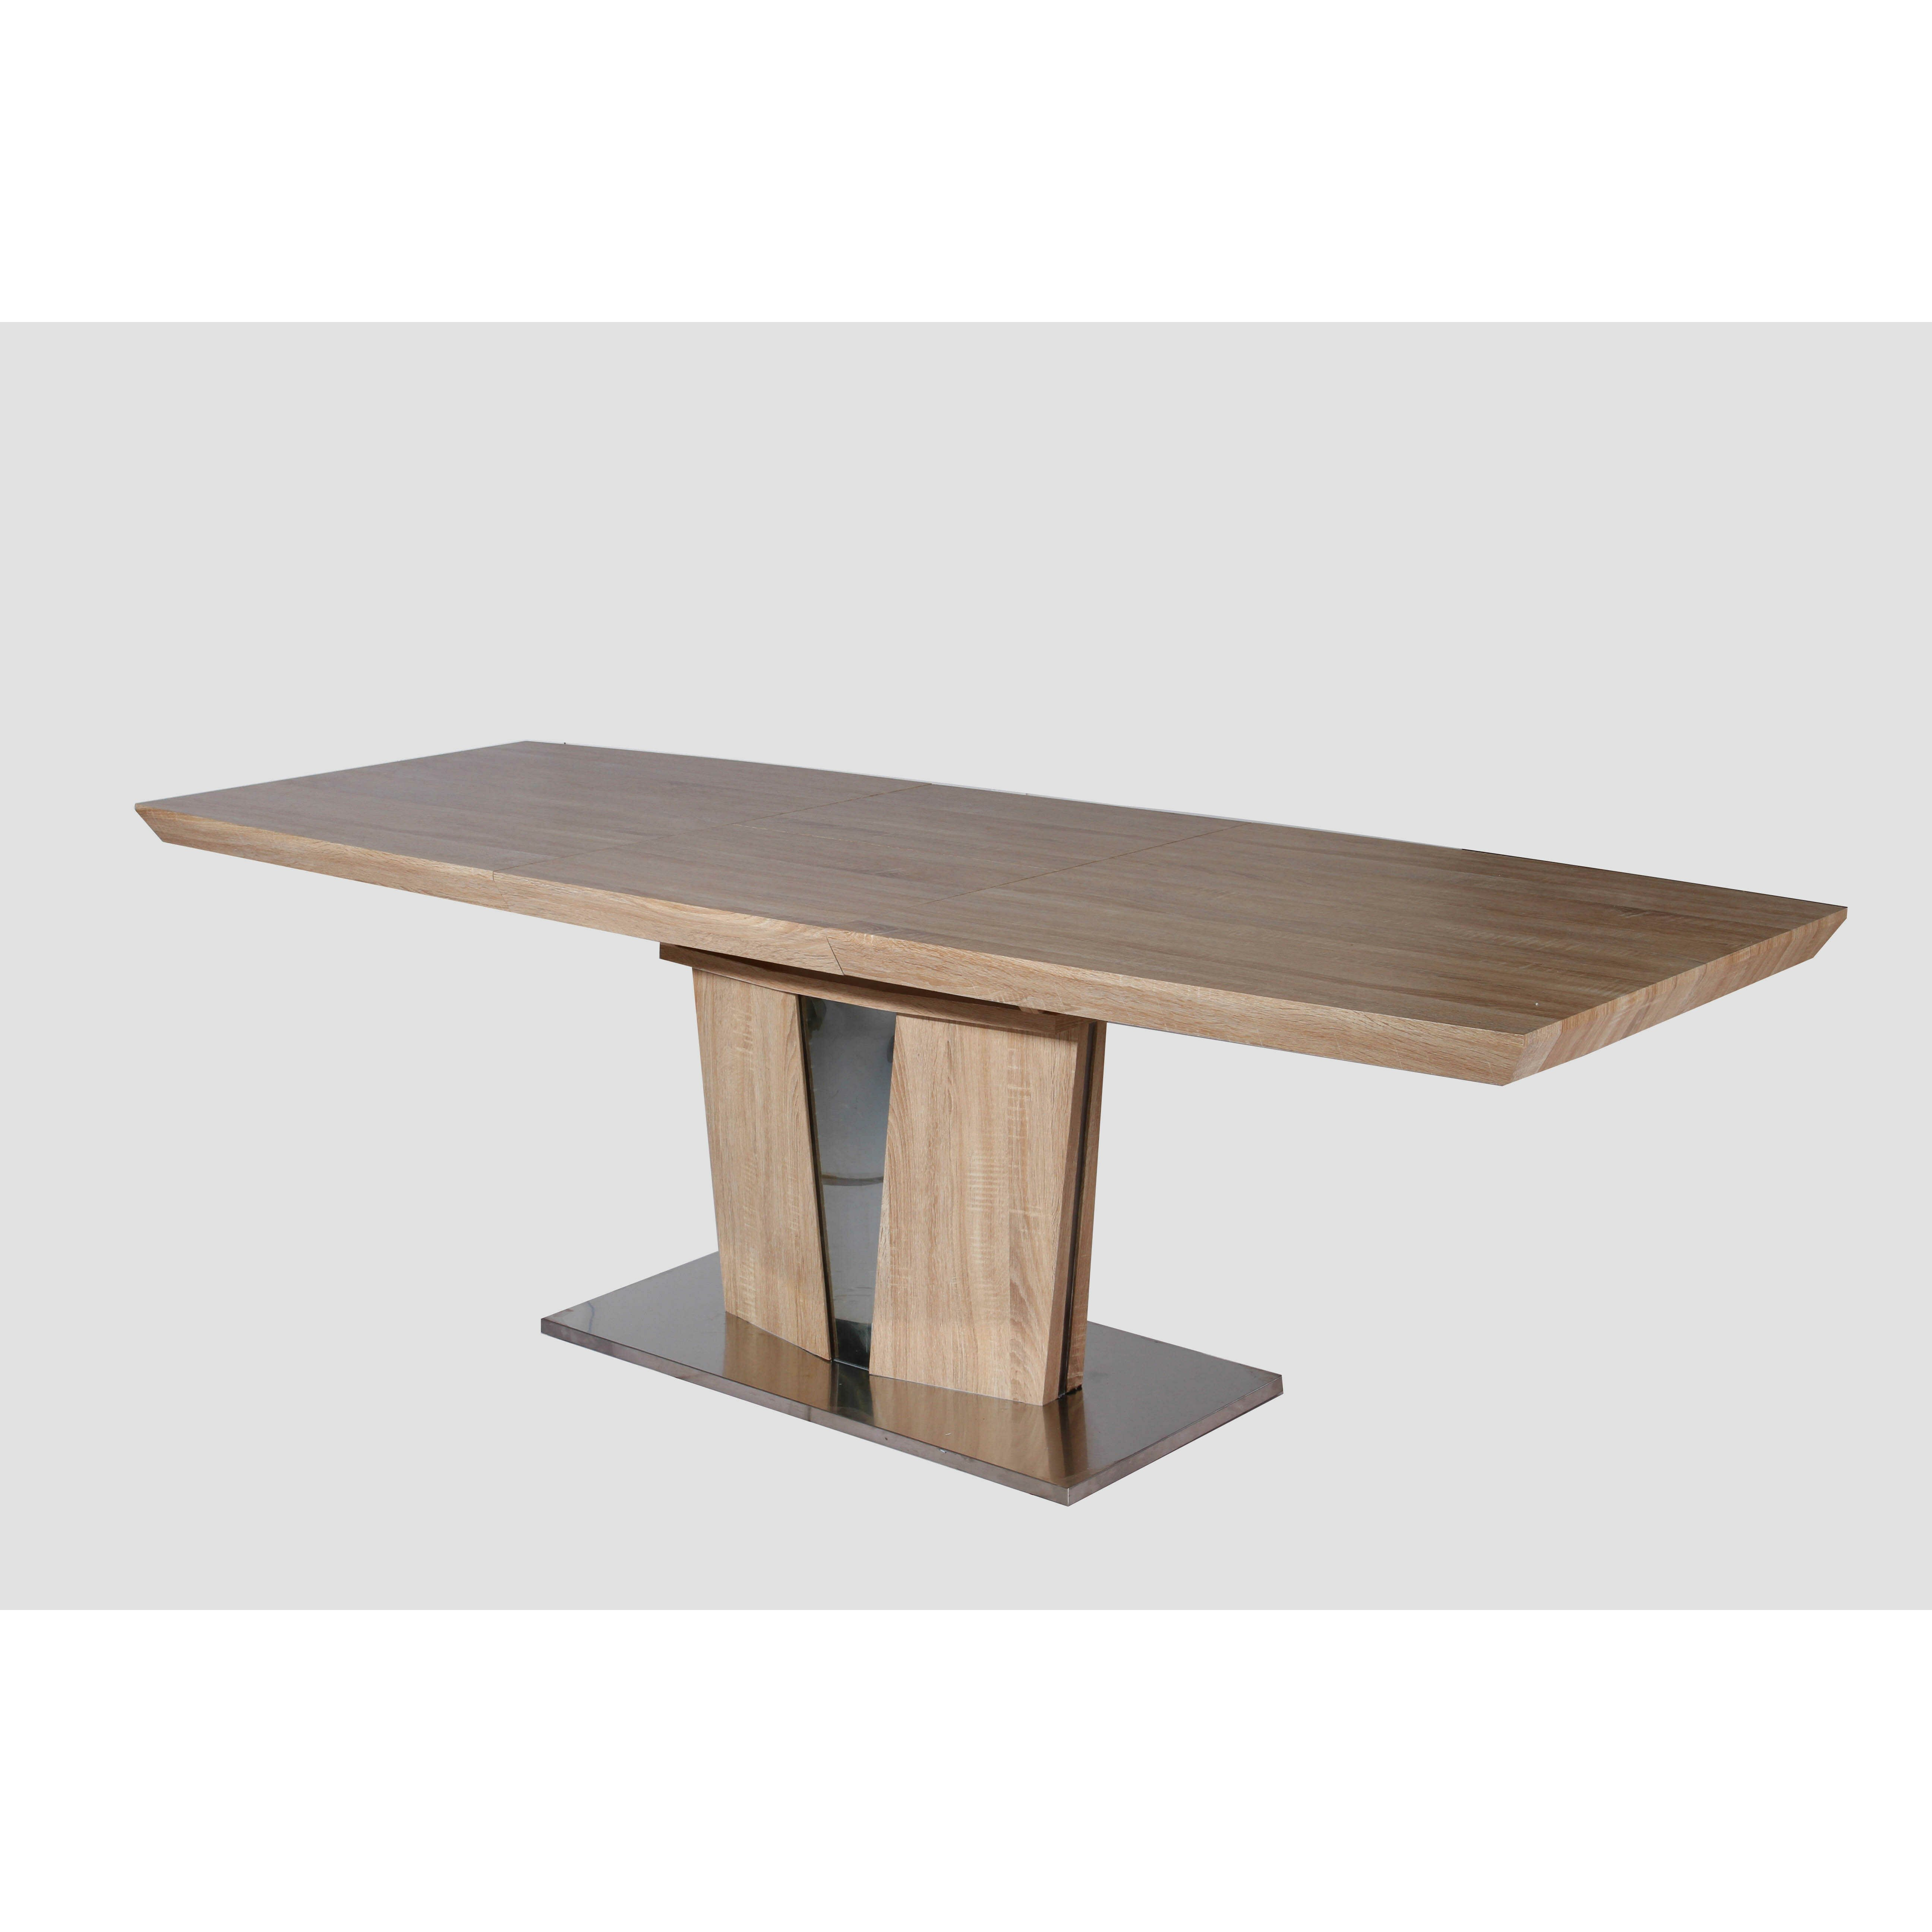 Creative Images International Extendable Dining Table  : Dining Table T1404 Sonoma from www.wayfair.com size 5184 x 5184 jpeg 442kB